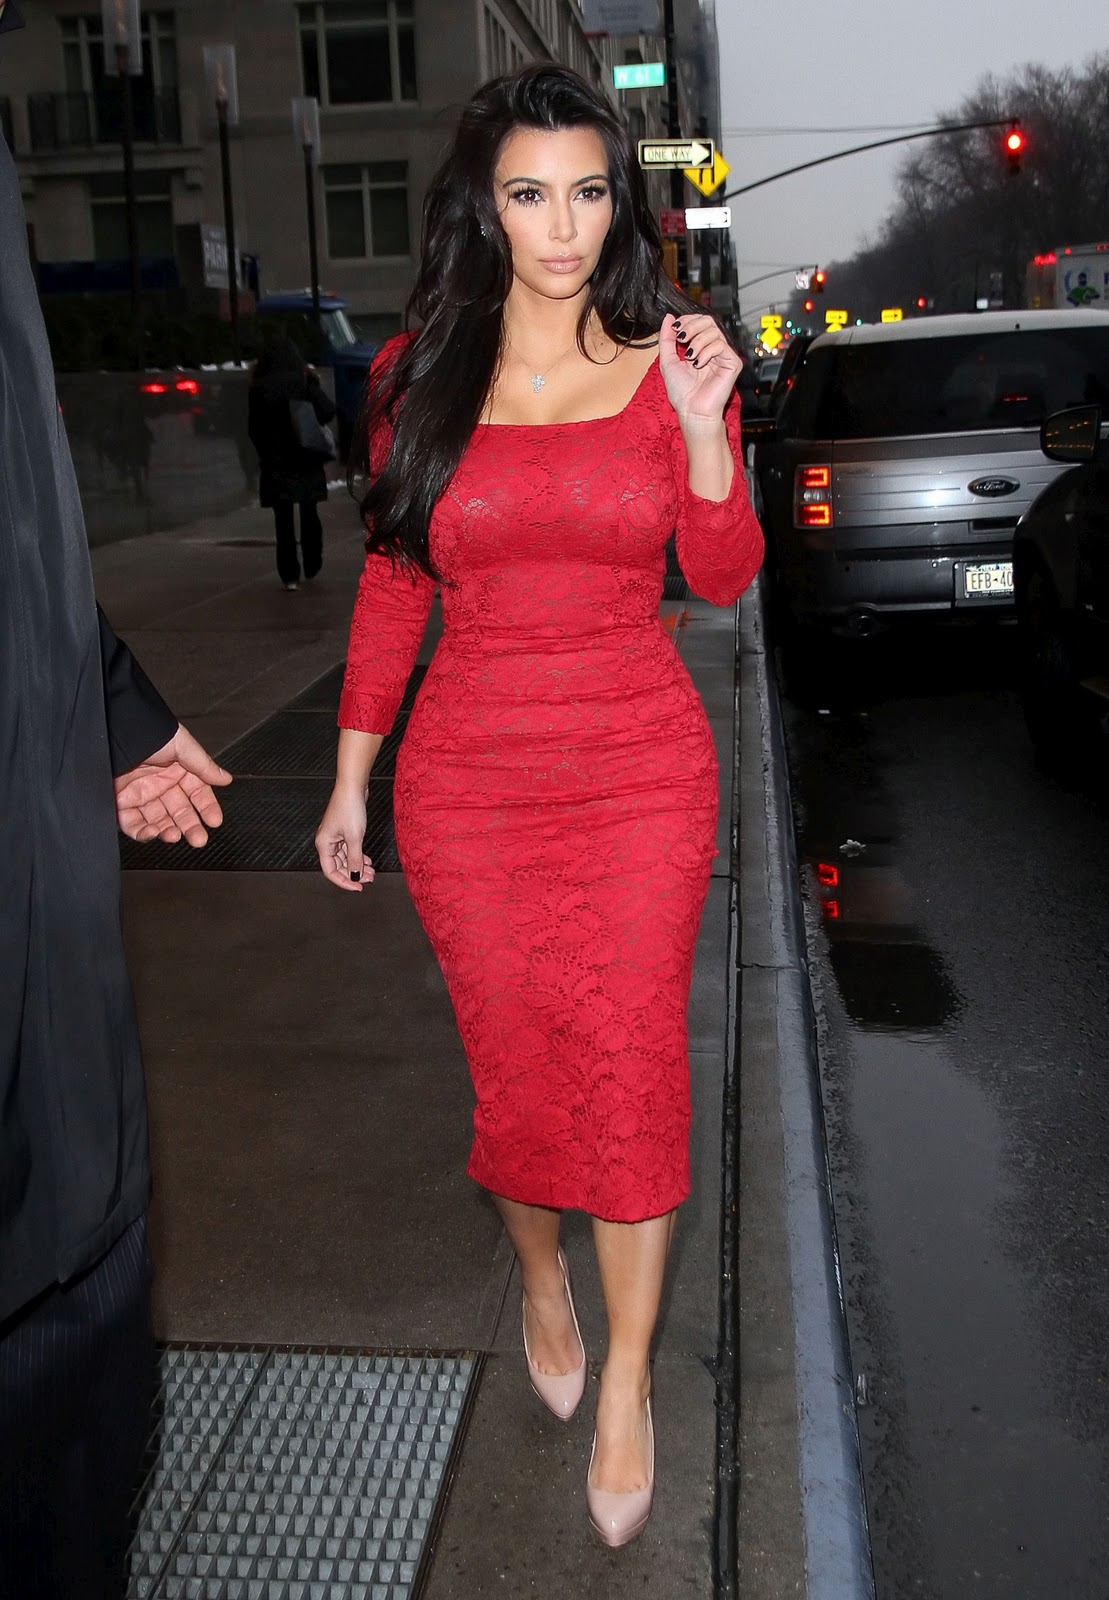 http://3.bp.blogspot.com/-TC-OQ14PlGo/UAGrr_QckWI/AAAAAAAAAx8/j5gG95XyzeA/s1600/kim-kardashian-dress-fashion-show-2012-walk-photoshoot-sexy-style-kim-kardashian-hot-pics-images-gallery-2012-wallpapers-2.jpg